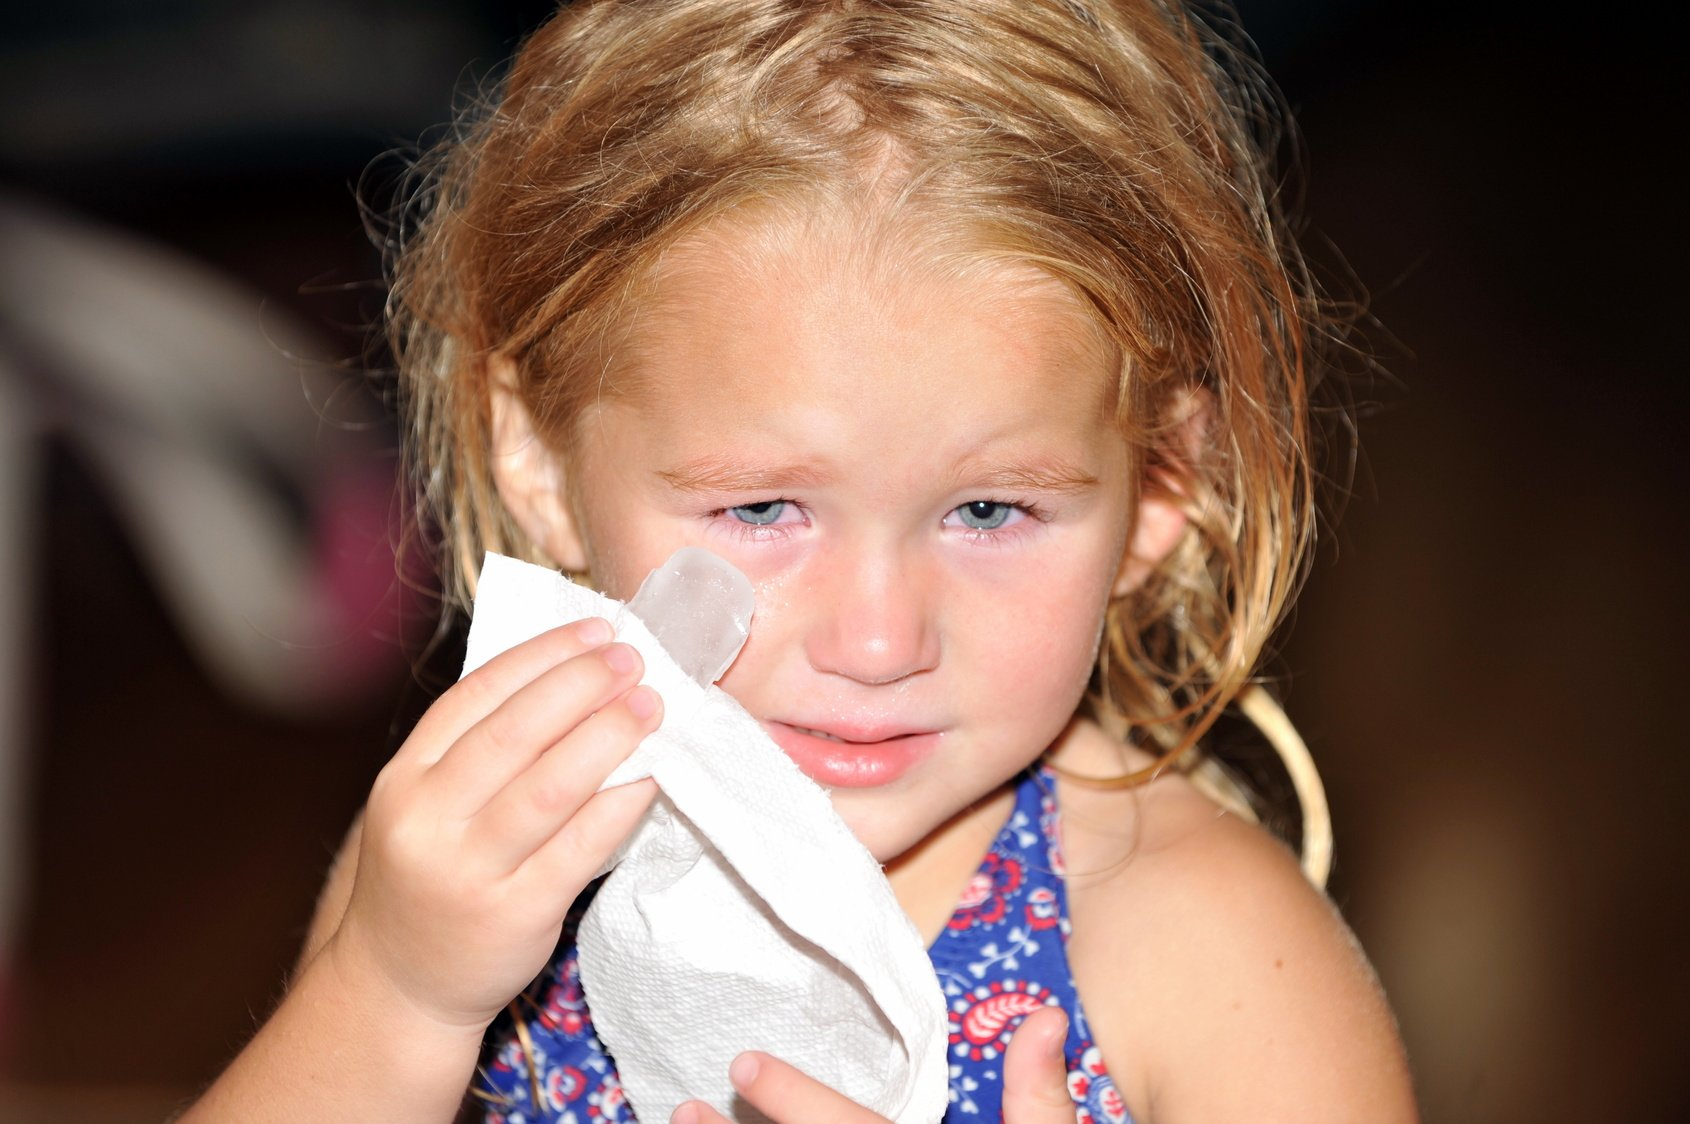 Little Girl Hurts Eye and Applies Ice to Make it Feel Better